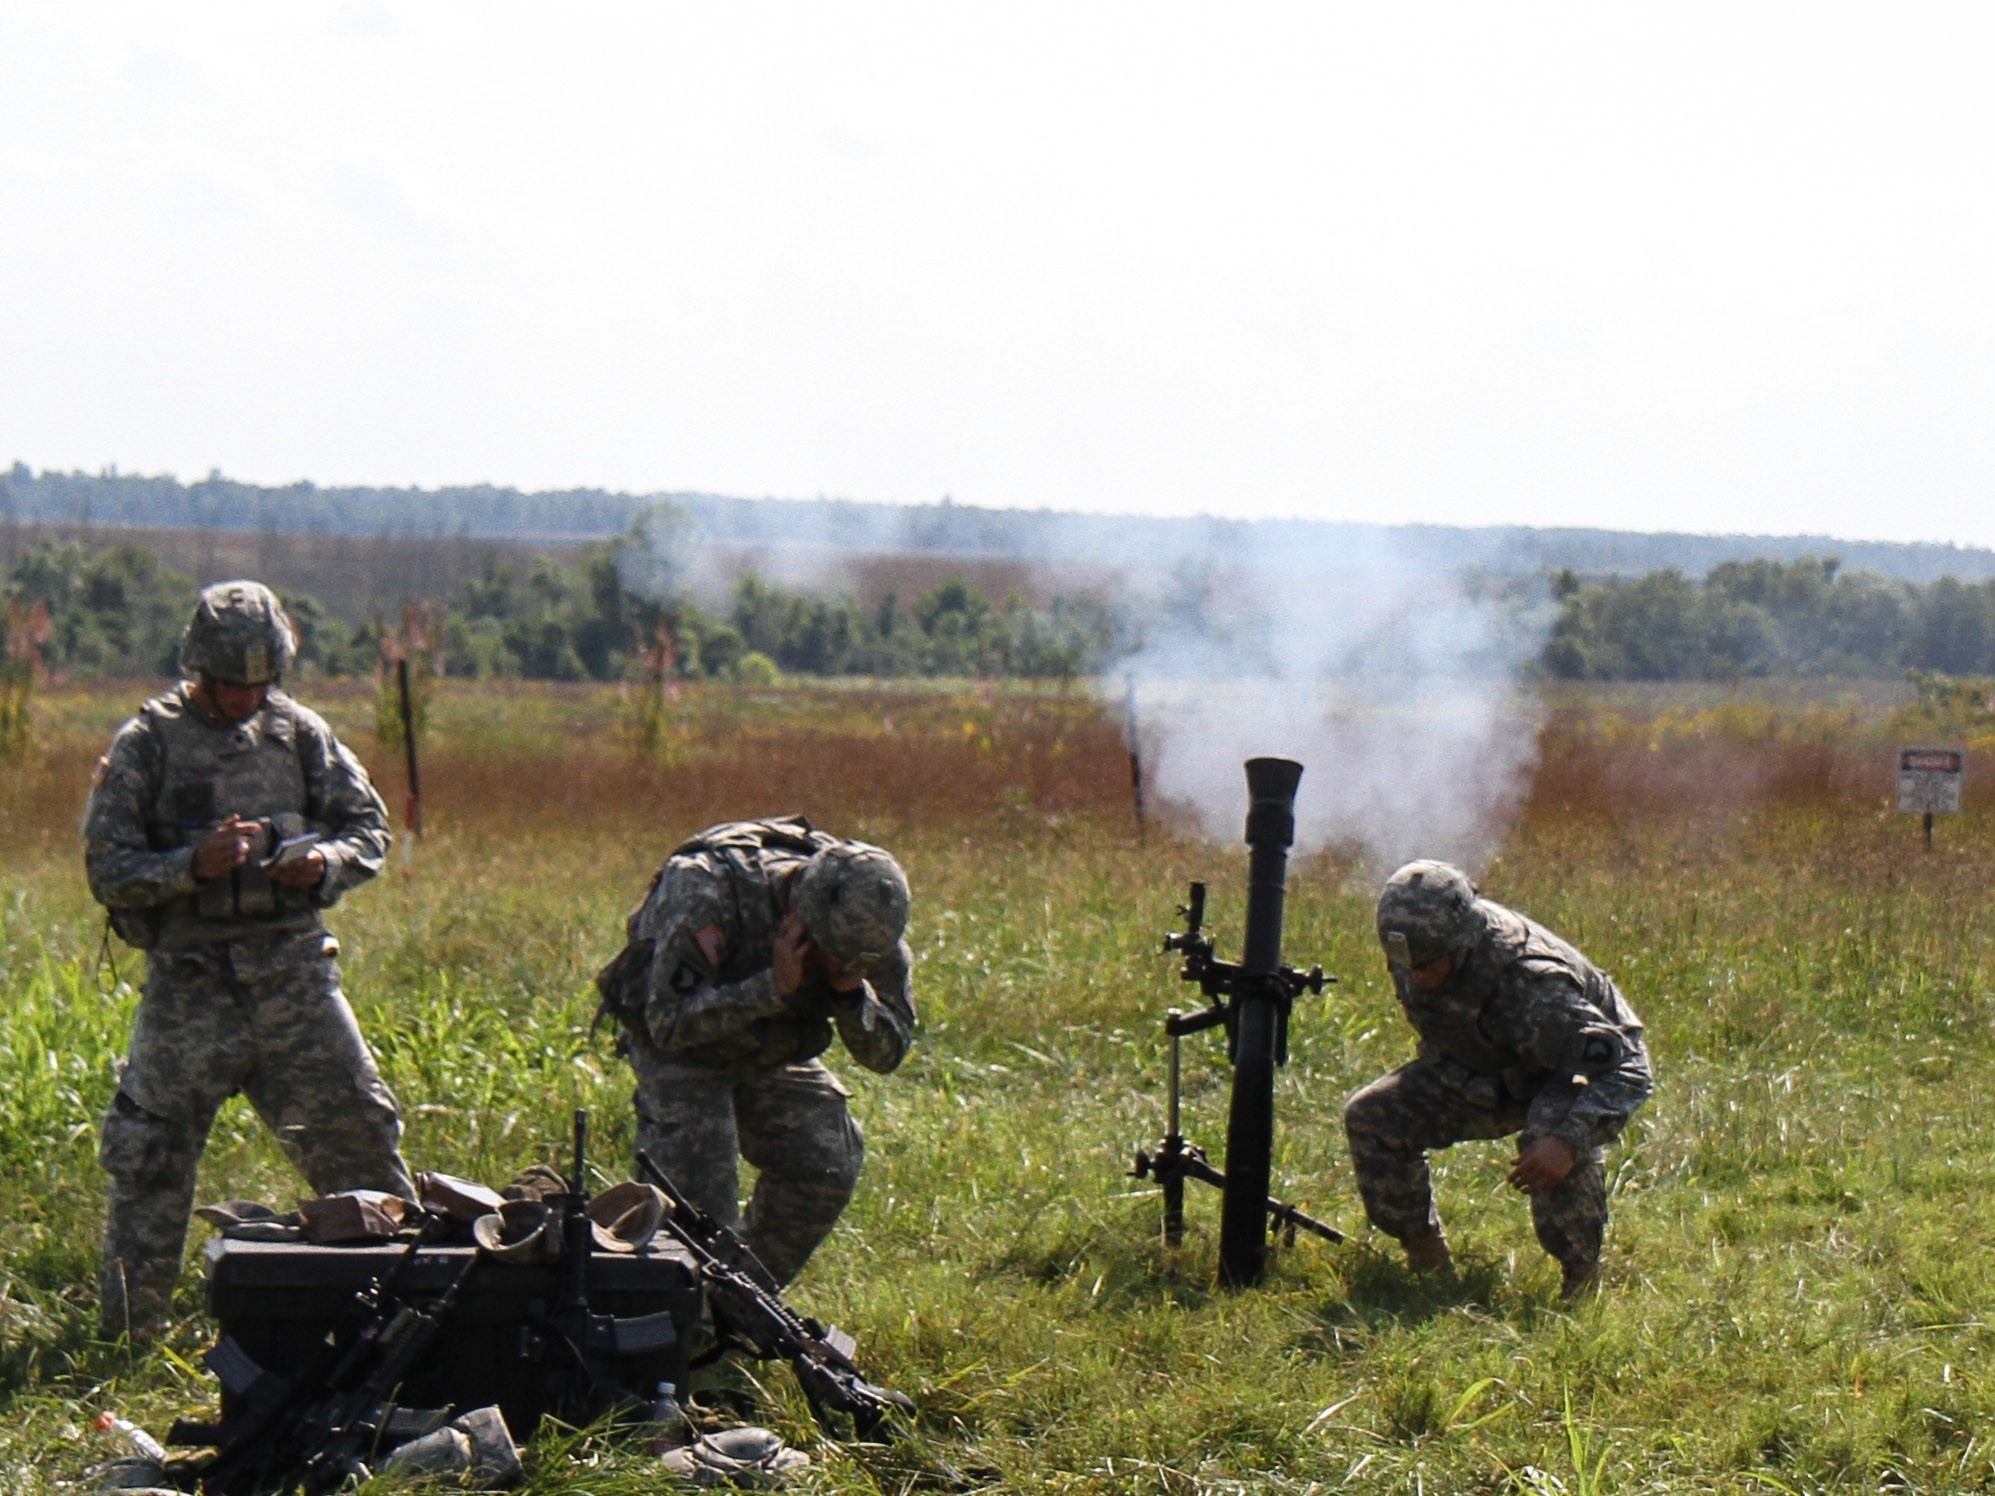 Mortar In Field : Mortar s fire in the field exercise for excellence